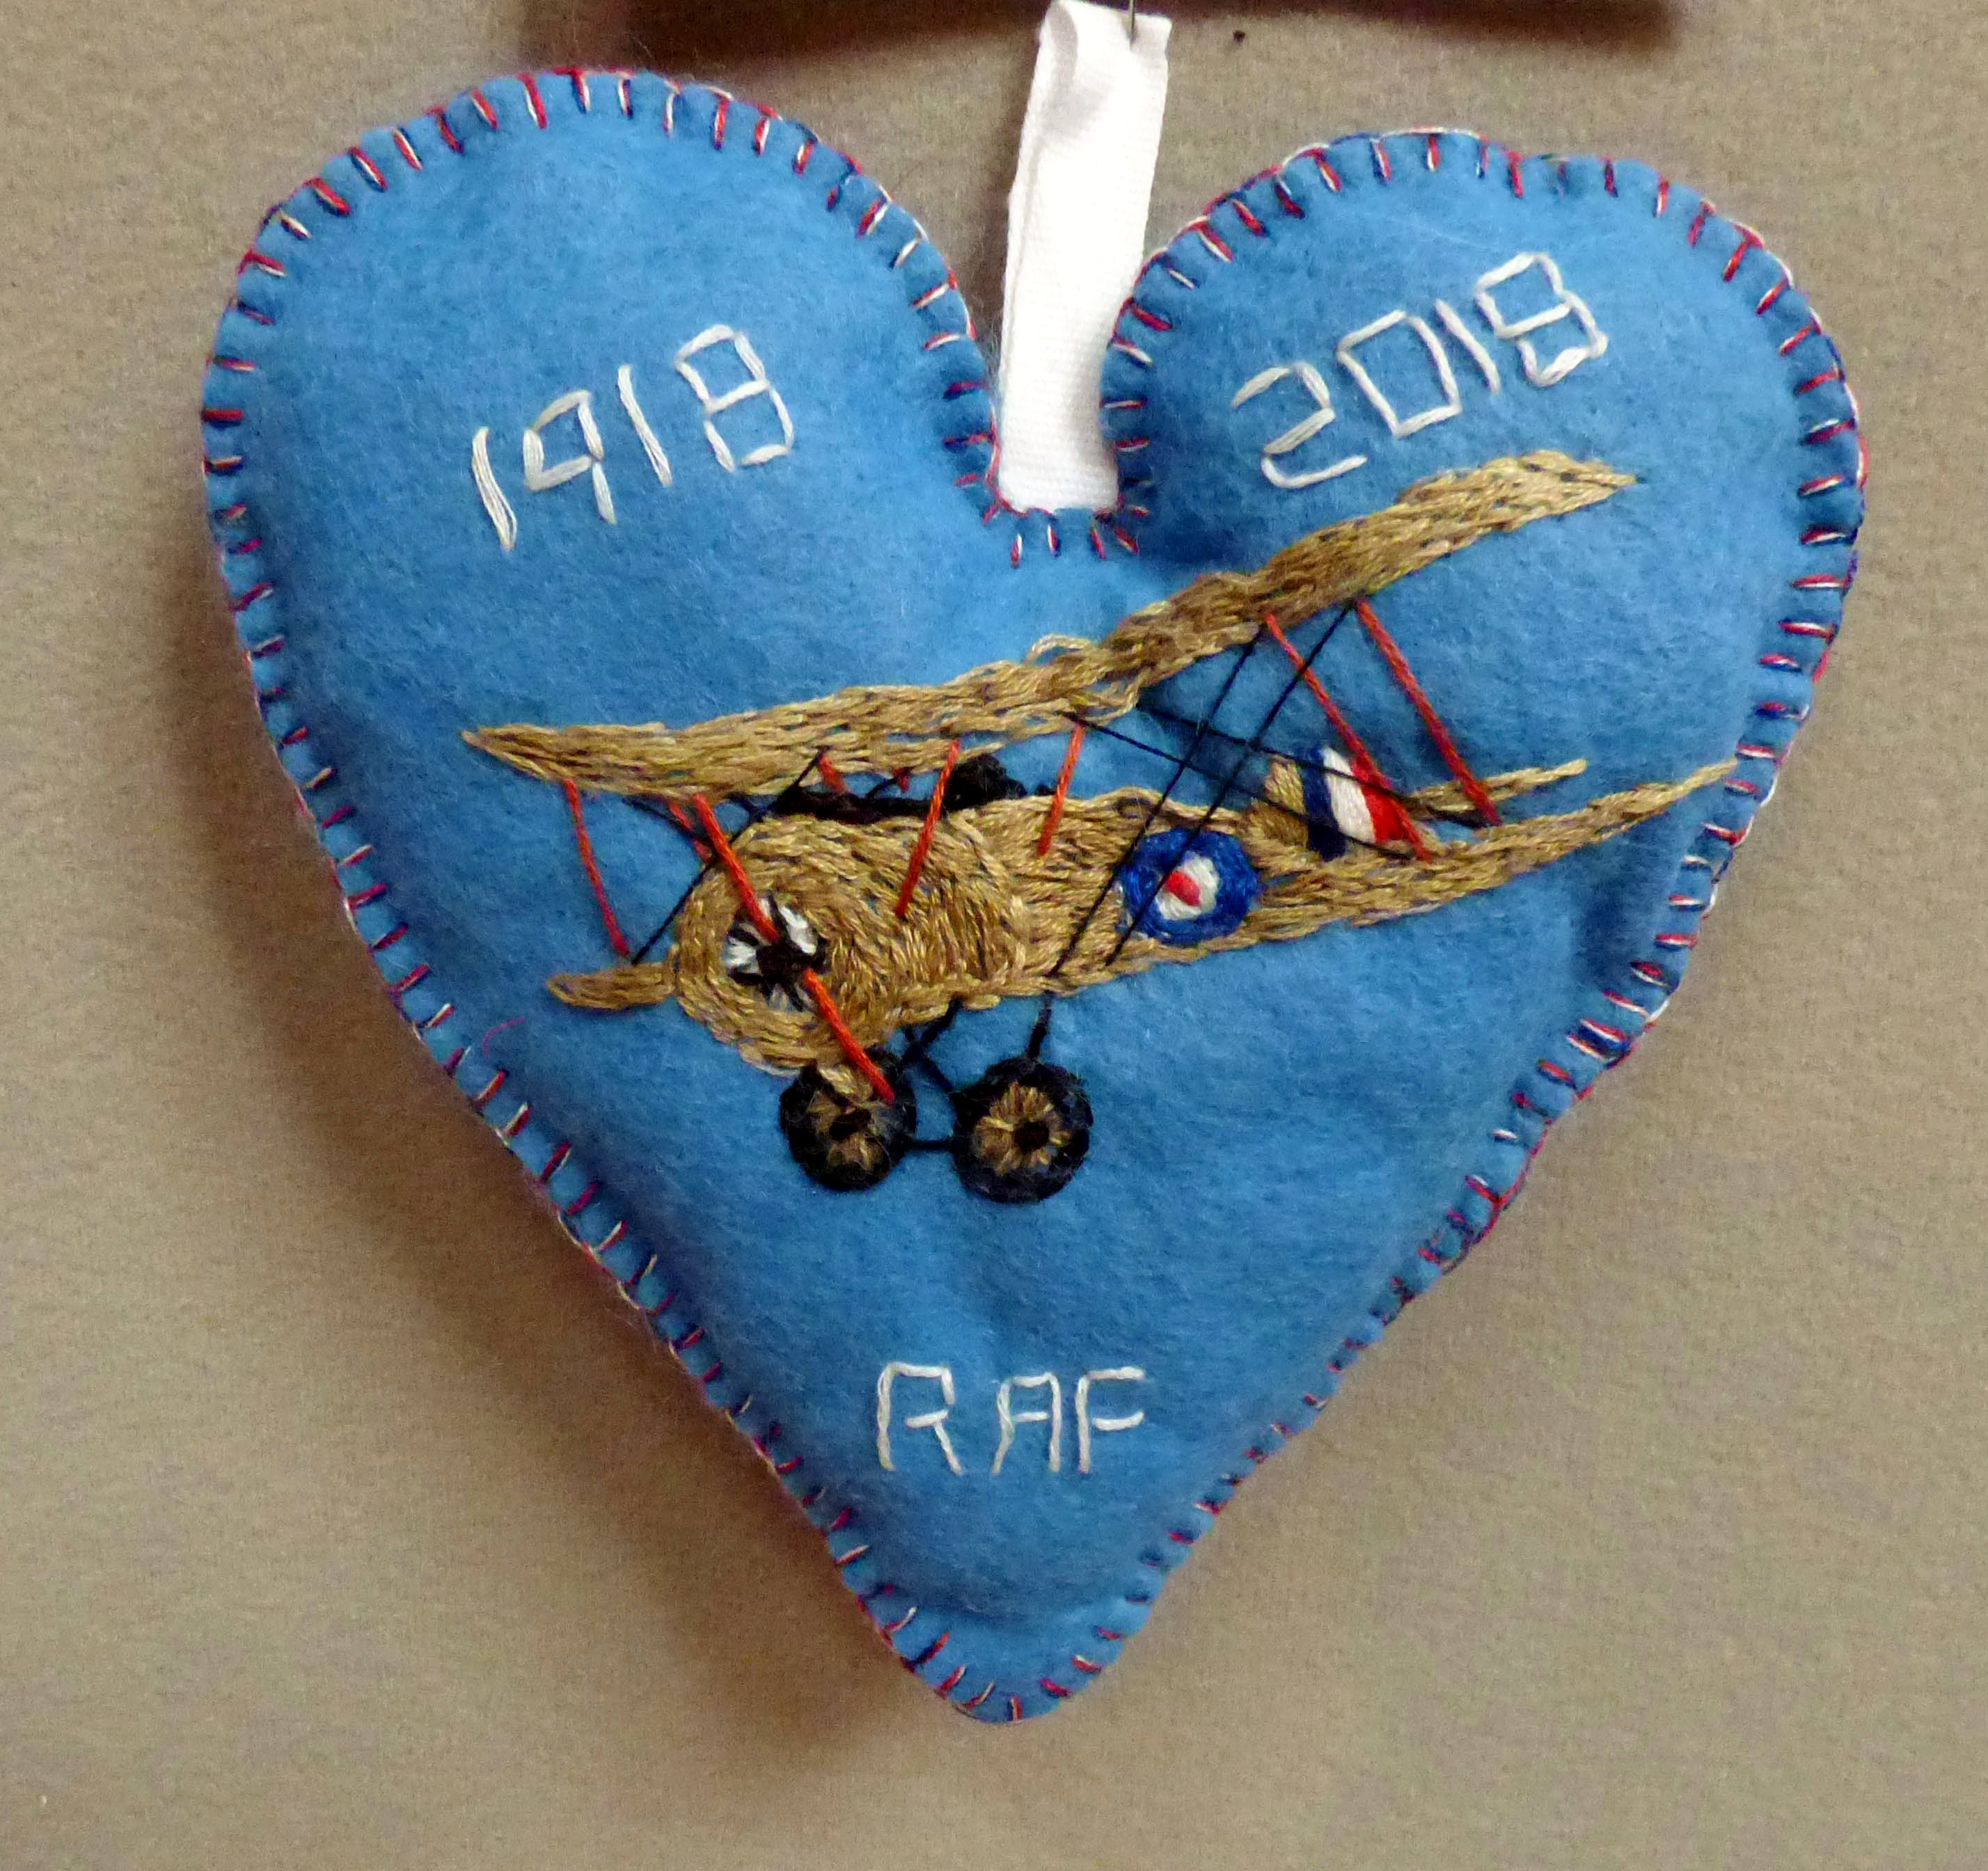 RAF 100 YEARS by Jacqueline Gregory, in memory of Chief Technician John Desmond Crawford, 100 Hearts exhibition, Liverpool Cathedral, Sept 2018